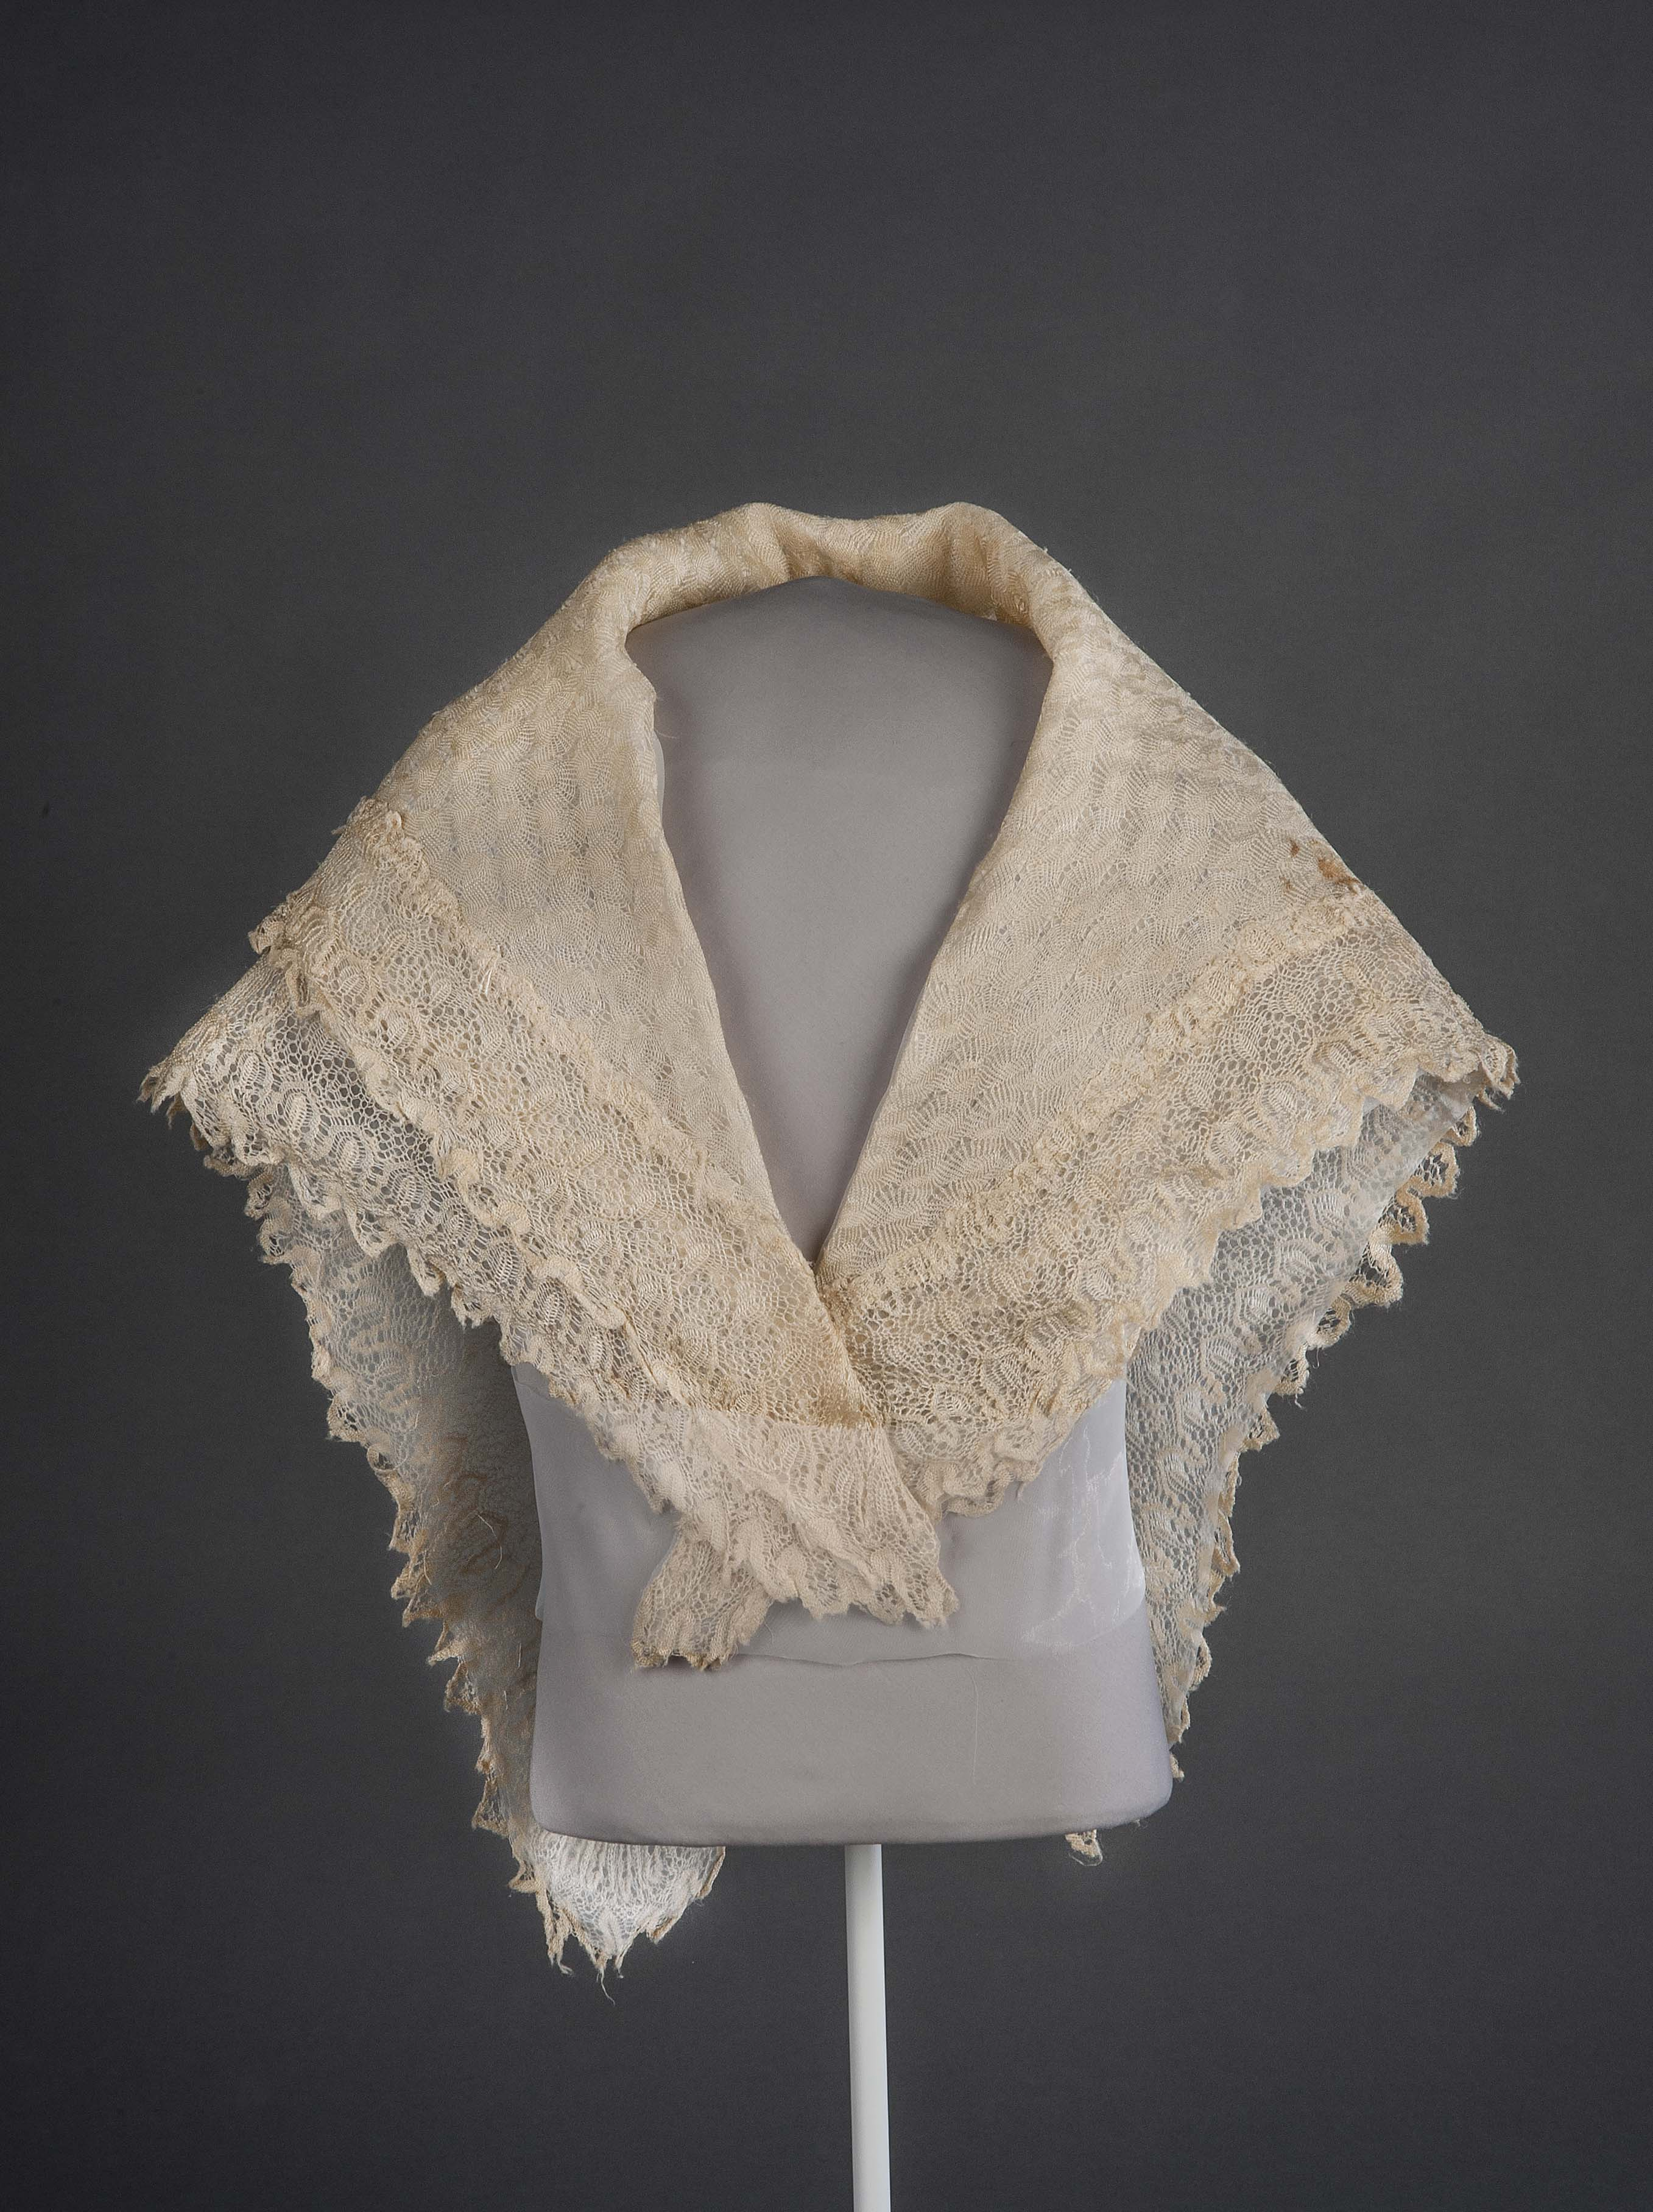 Lace shawl given to Harriet Tubman by Queen Victoria, ca. 1897.                     2009.50.39